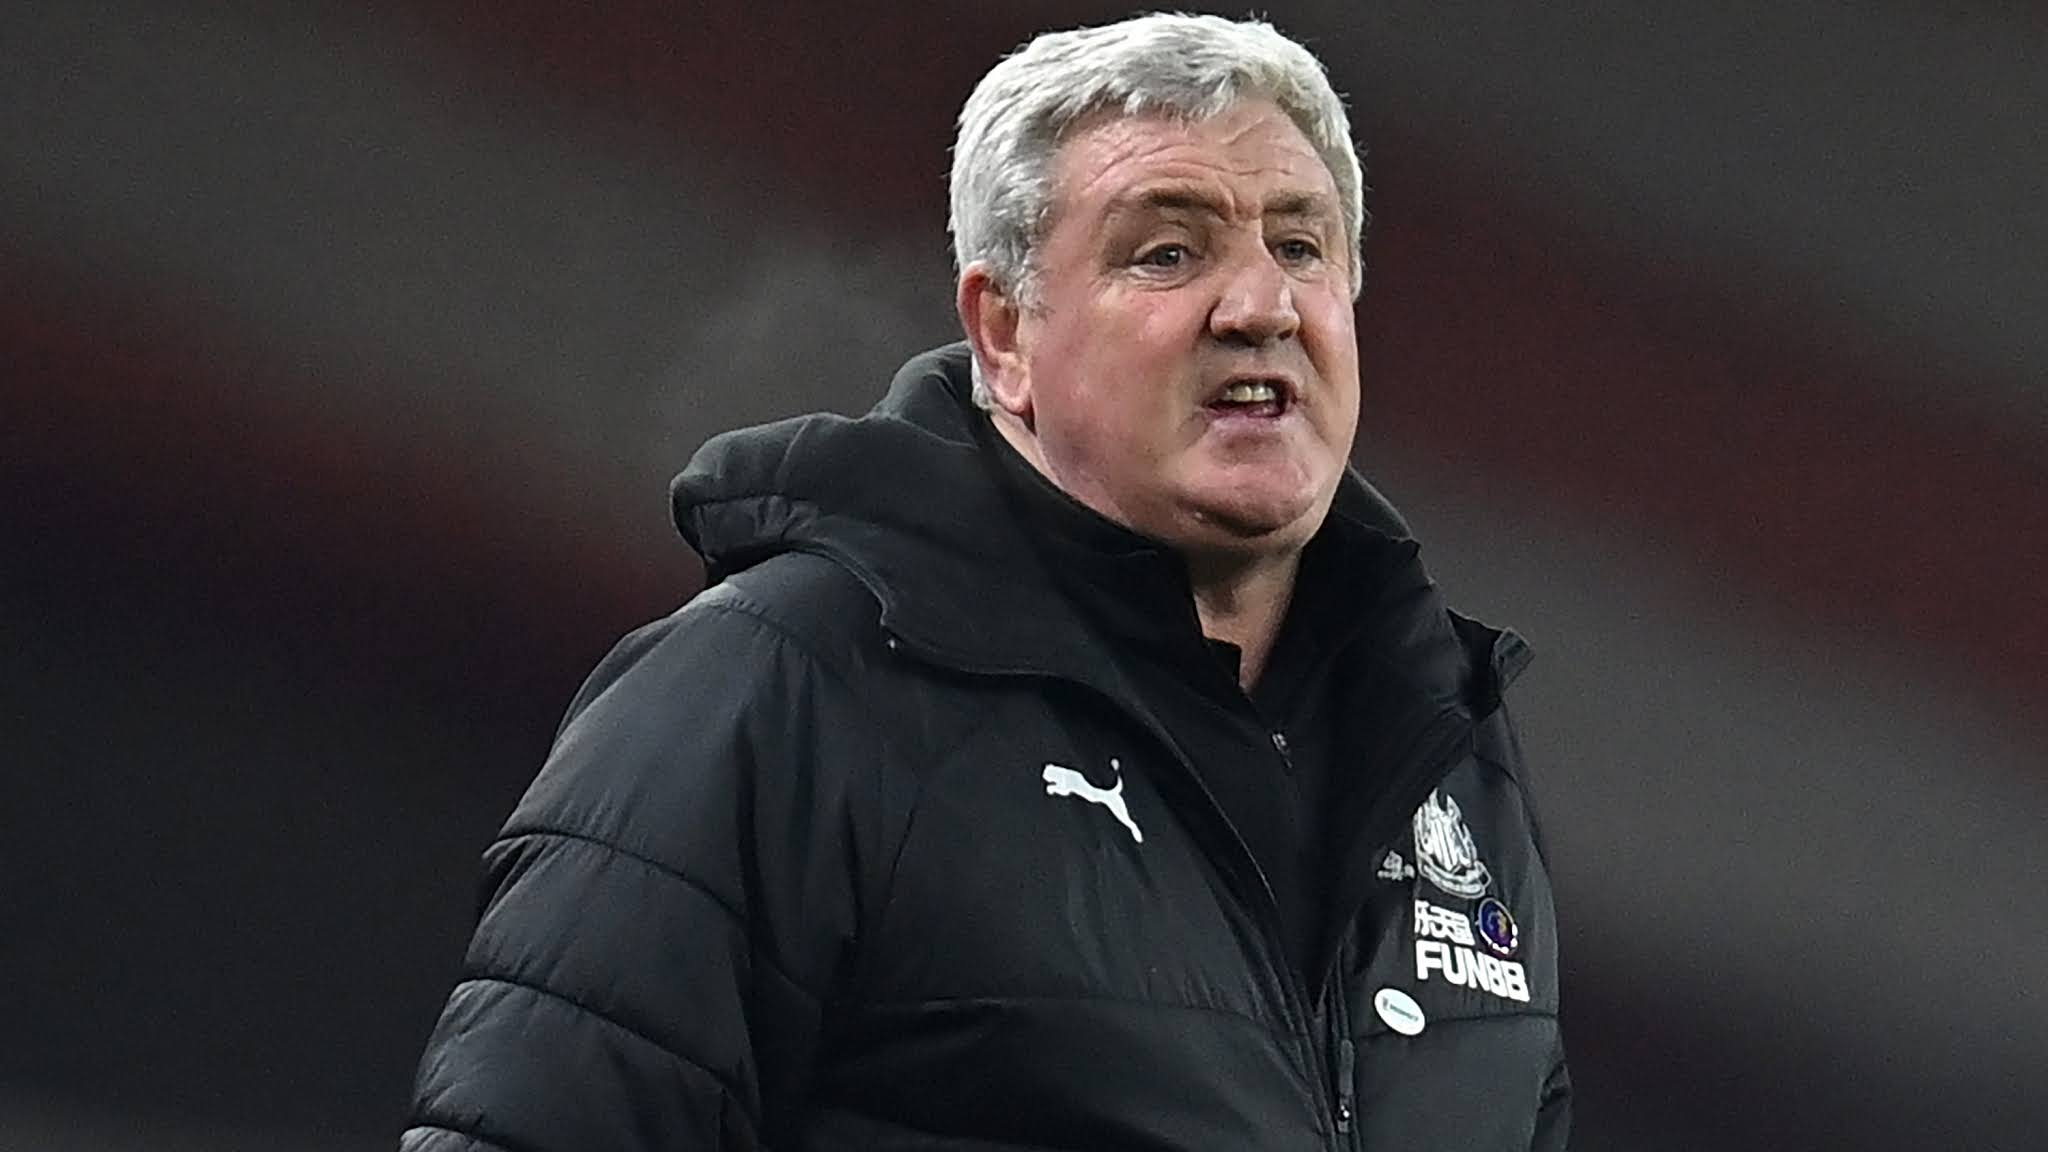 Steve Bruce lashes out at 'frigging hopeless' Newcastle players